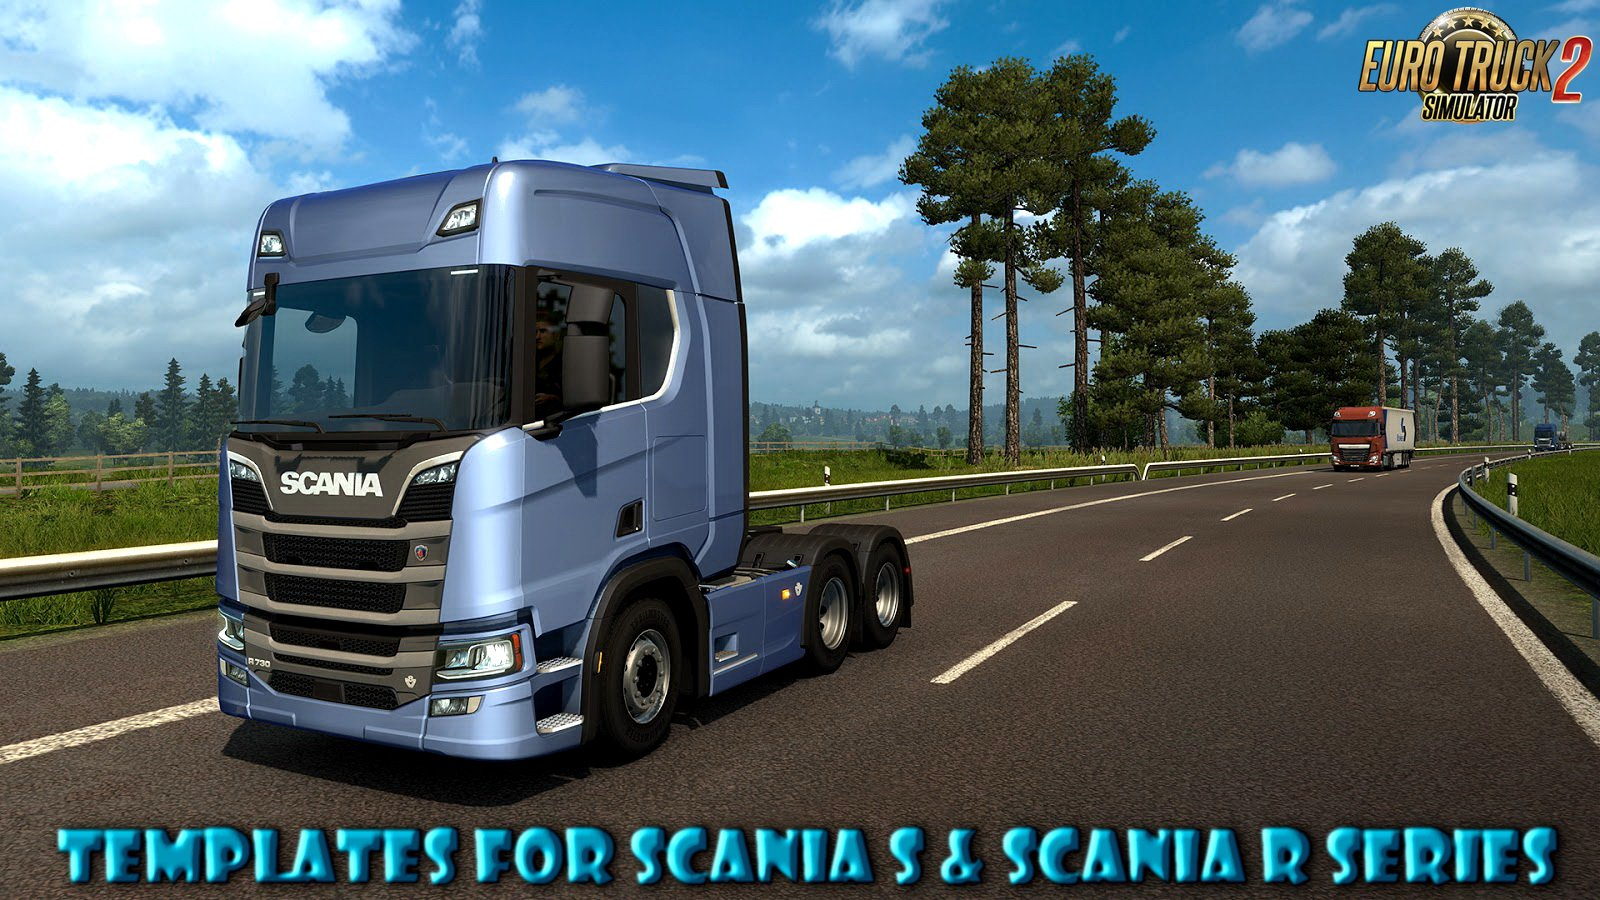 Templates for Scania S & Scania R series v1.0 by Zeeuk1 Modz (1.30.x)